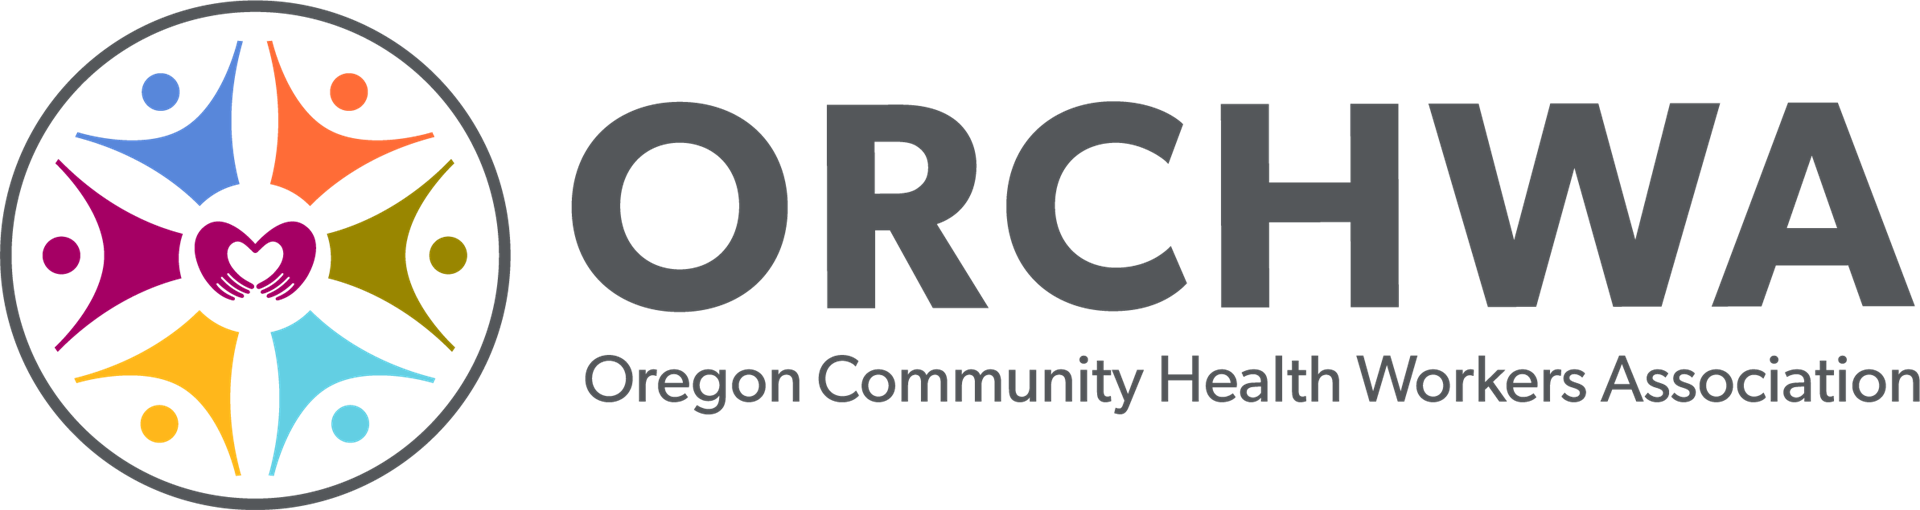 Logo: ORCHWA | Oregon Community Health Workers Association